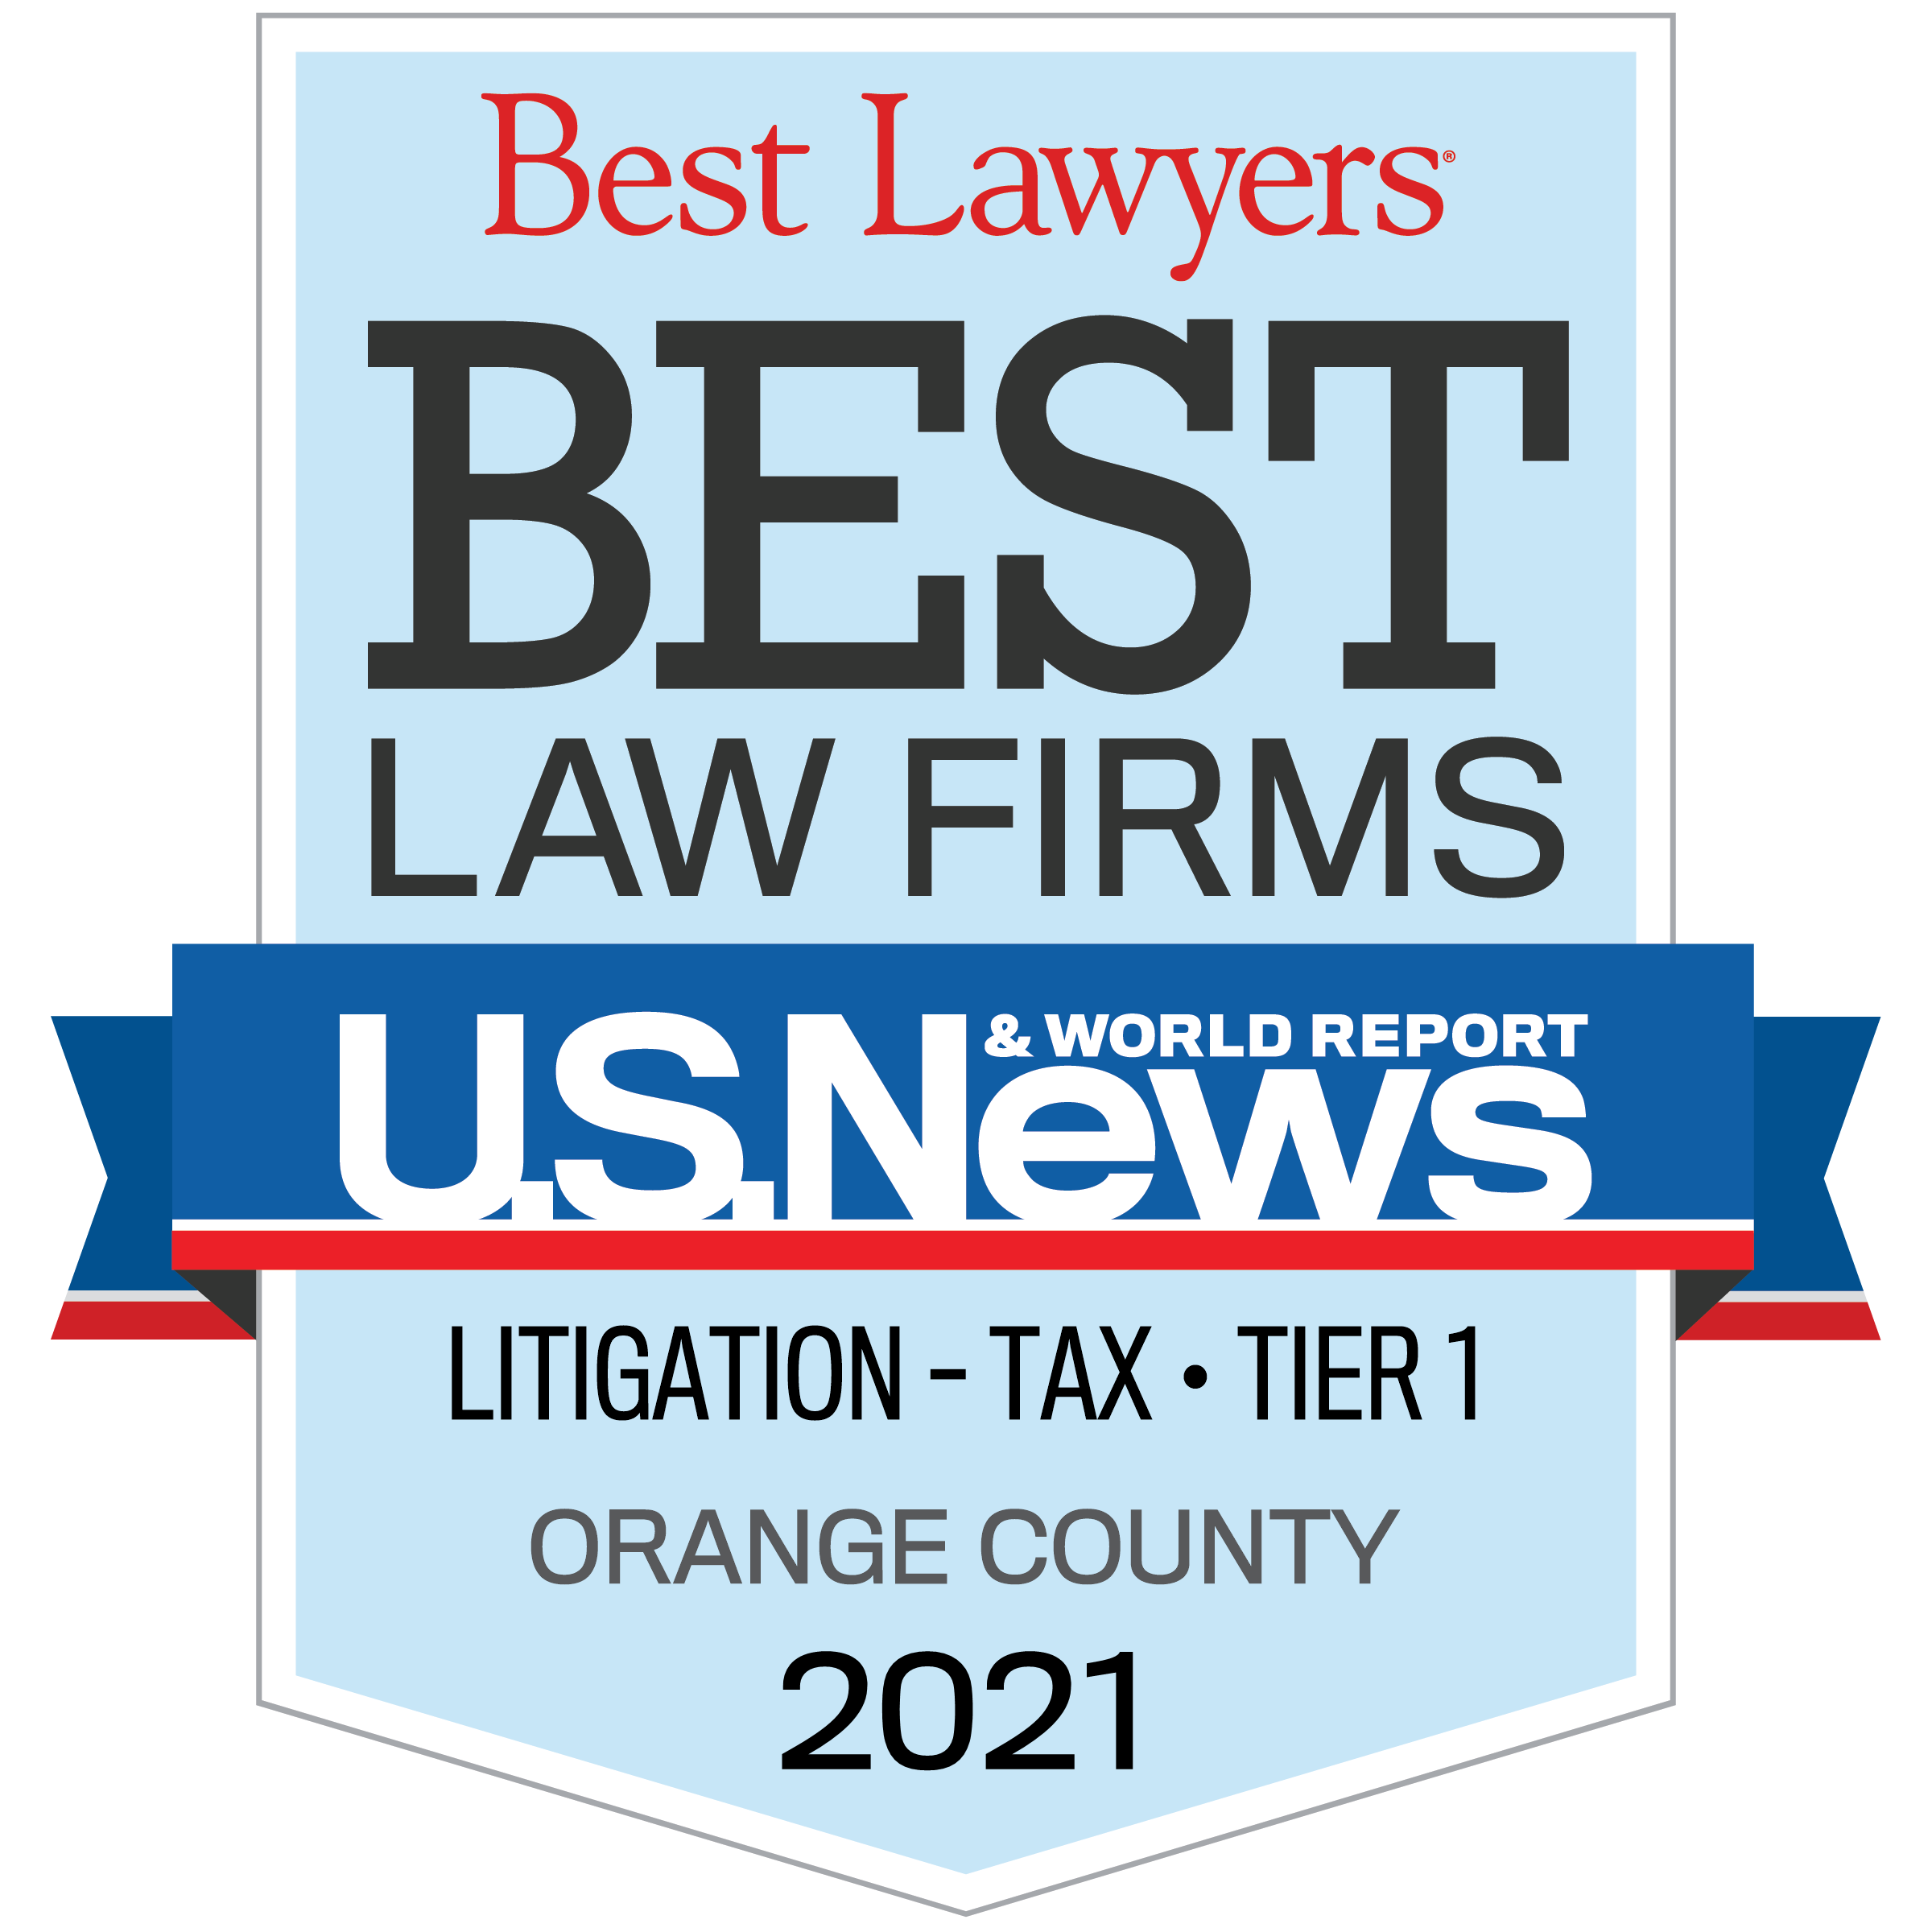 A. Lavar Taylor awarded Best Lawyers by U.S. News